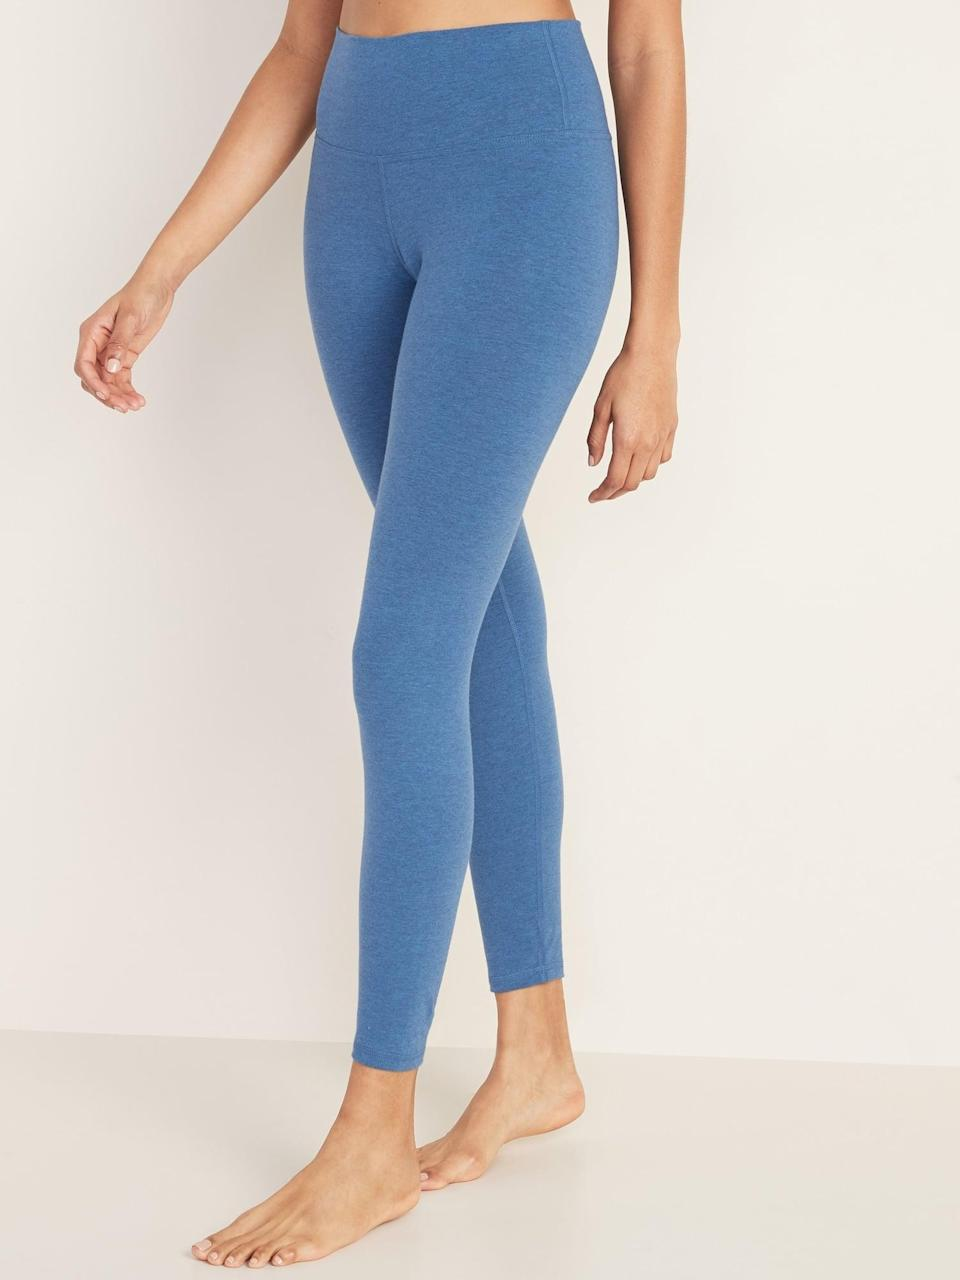 "<p>These <a href=""https://www.popsugar.com/buy/Old-Navy-High-Waisted-Balance-Yoga-Leggings-546339?p_name=Old%20Navy%20High-Waisted%20Balance%20Yoga%20Leggings&retailer=oldnavy.gap.com&pid=546339&price=16&evar1=fit%3Auk&evar9=46472938&evar98=https%3A%2F%2Fwww.popsugar.com%2Ffitness%2Fphoto-gallery%2F46472938%2Fimage%2F47301769%2FOld-Navy-High-Waisted-Balance-Yoga-Leggings&list1=shopping%2Cworkout%20clothes%2Cfitness%20gear%2Cproducts%20under%20%2450%2C50%20under%20%2450%2Cfitness%20shopping%2Caffordable%20shopping&prop13=api&pdata=1"" class=""link rapid-noclick-resp"" rel=""nofollow noopener"" target=""_blank"" data-ylk=""slk:Old Navy High-Waisted Balance Yoga Leggings"">Old Navy High-Waisted Balance Yoga Leggings</a> ($16) are soft, comfortable, and so affordable.</p>"